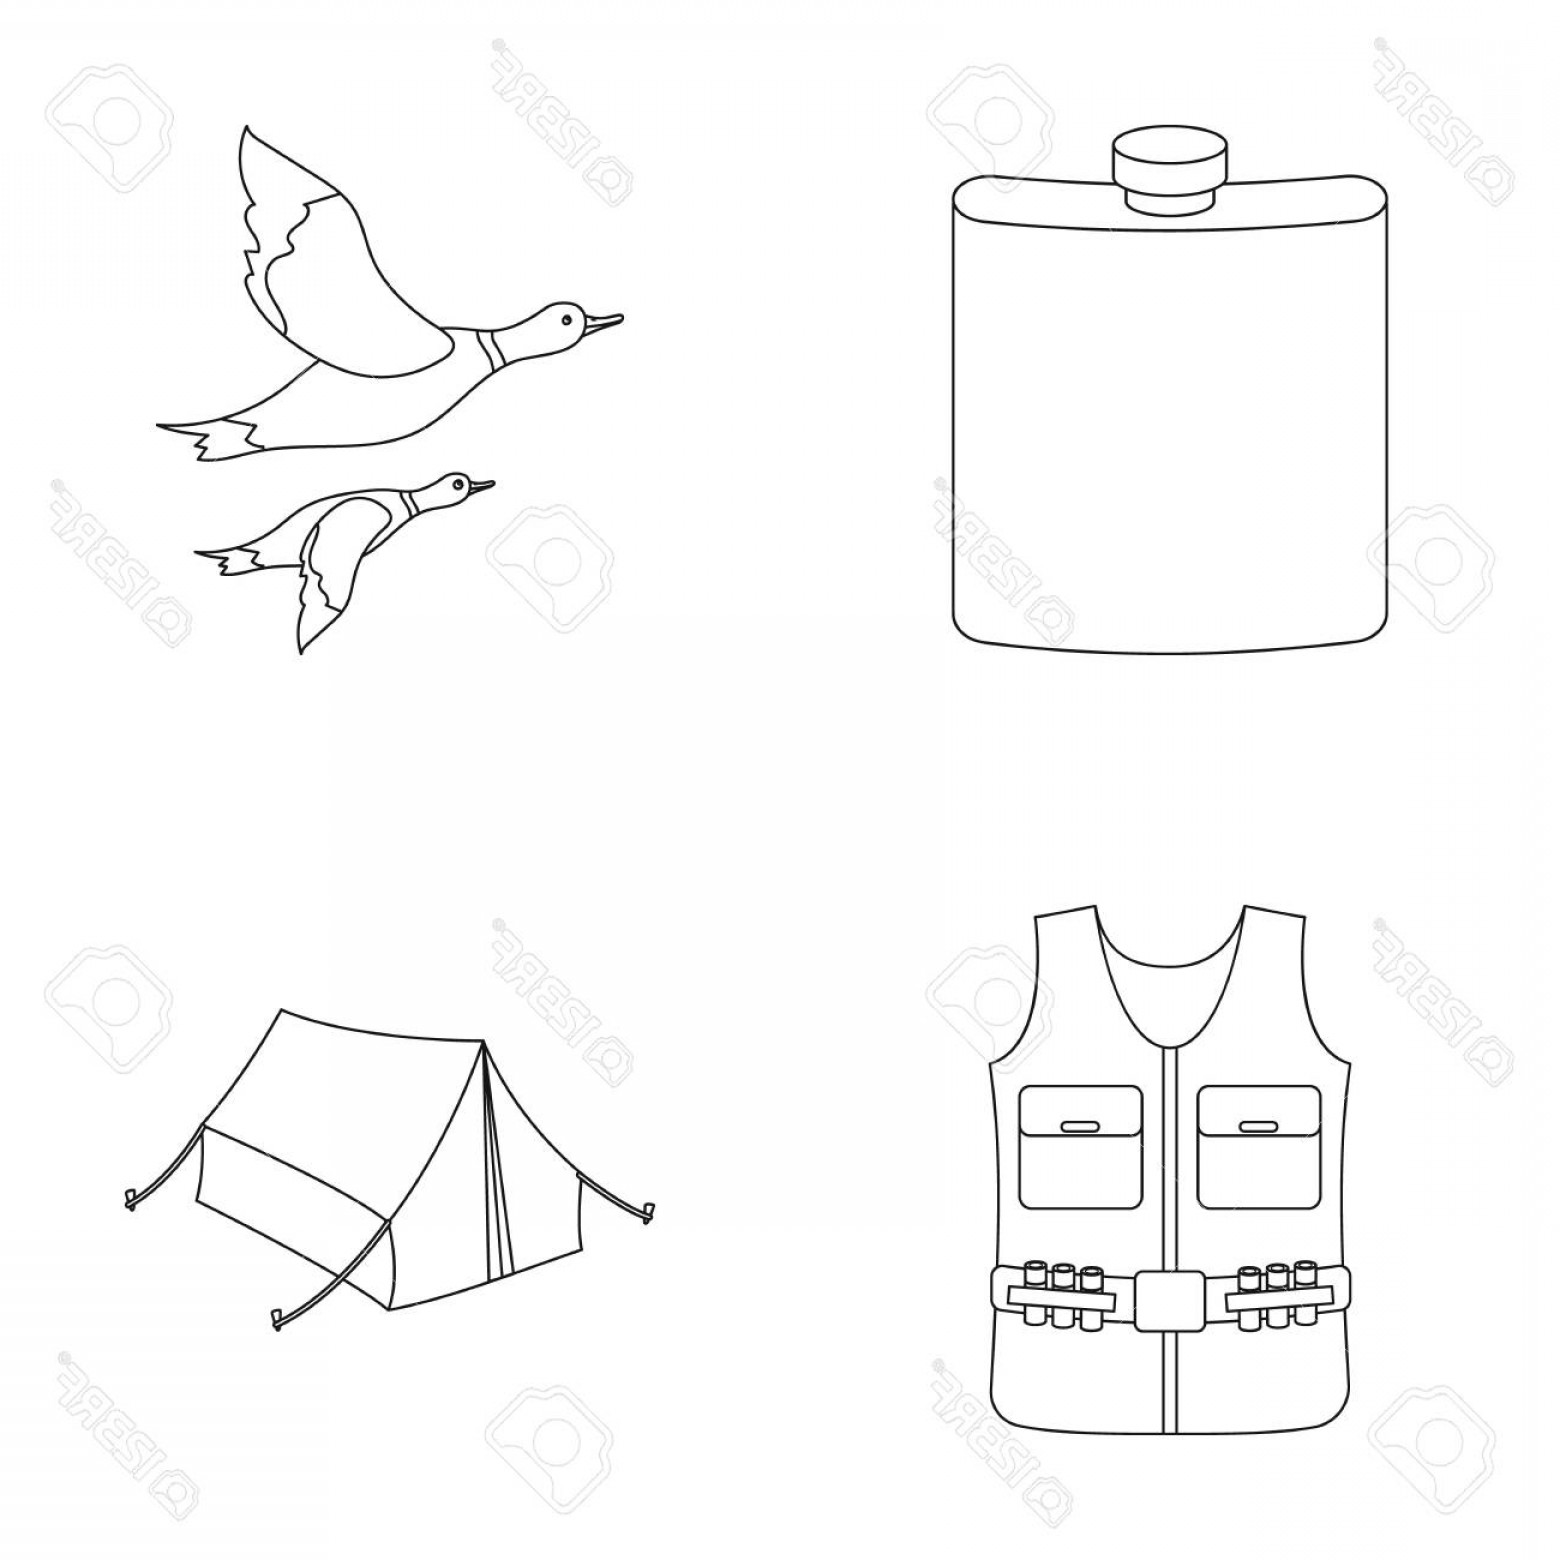 Flying Duck Outline Vector: Photostock Vector Flask Gilet With Cartridges Flying Ducks Tent Hunting Set Collection Icons In Outline Style Vector S